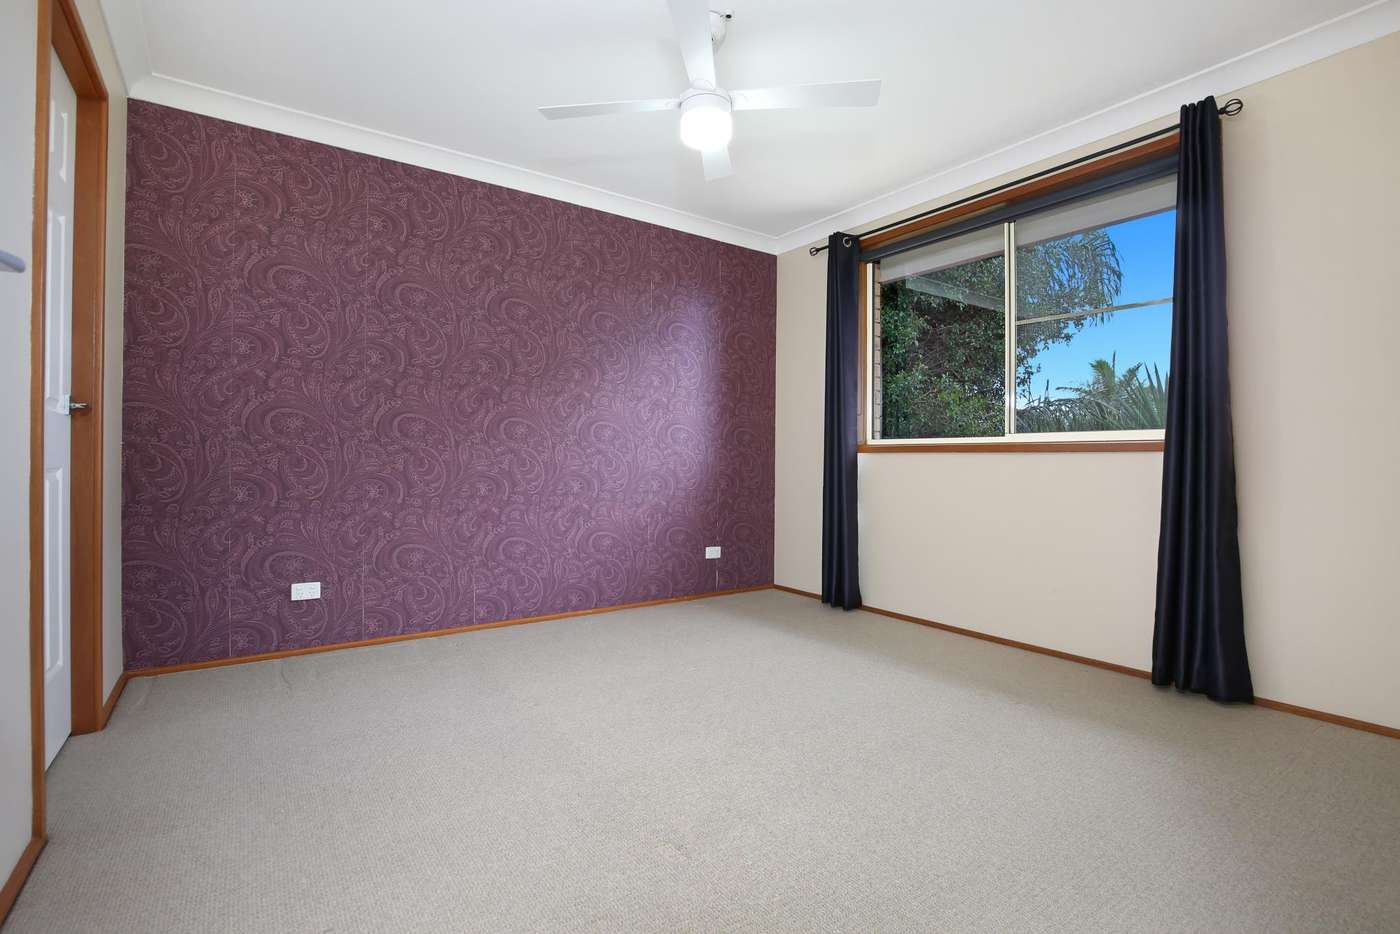 Sixth view of Homely house listing, 25 Prospect Street, Mount Saint Thomas NSW 2500